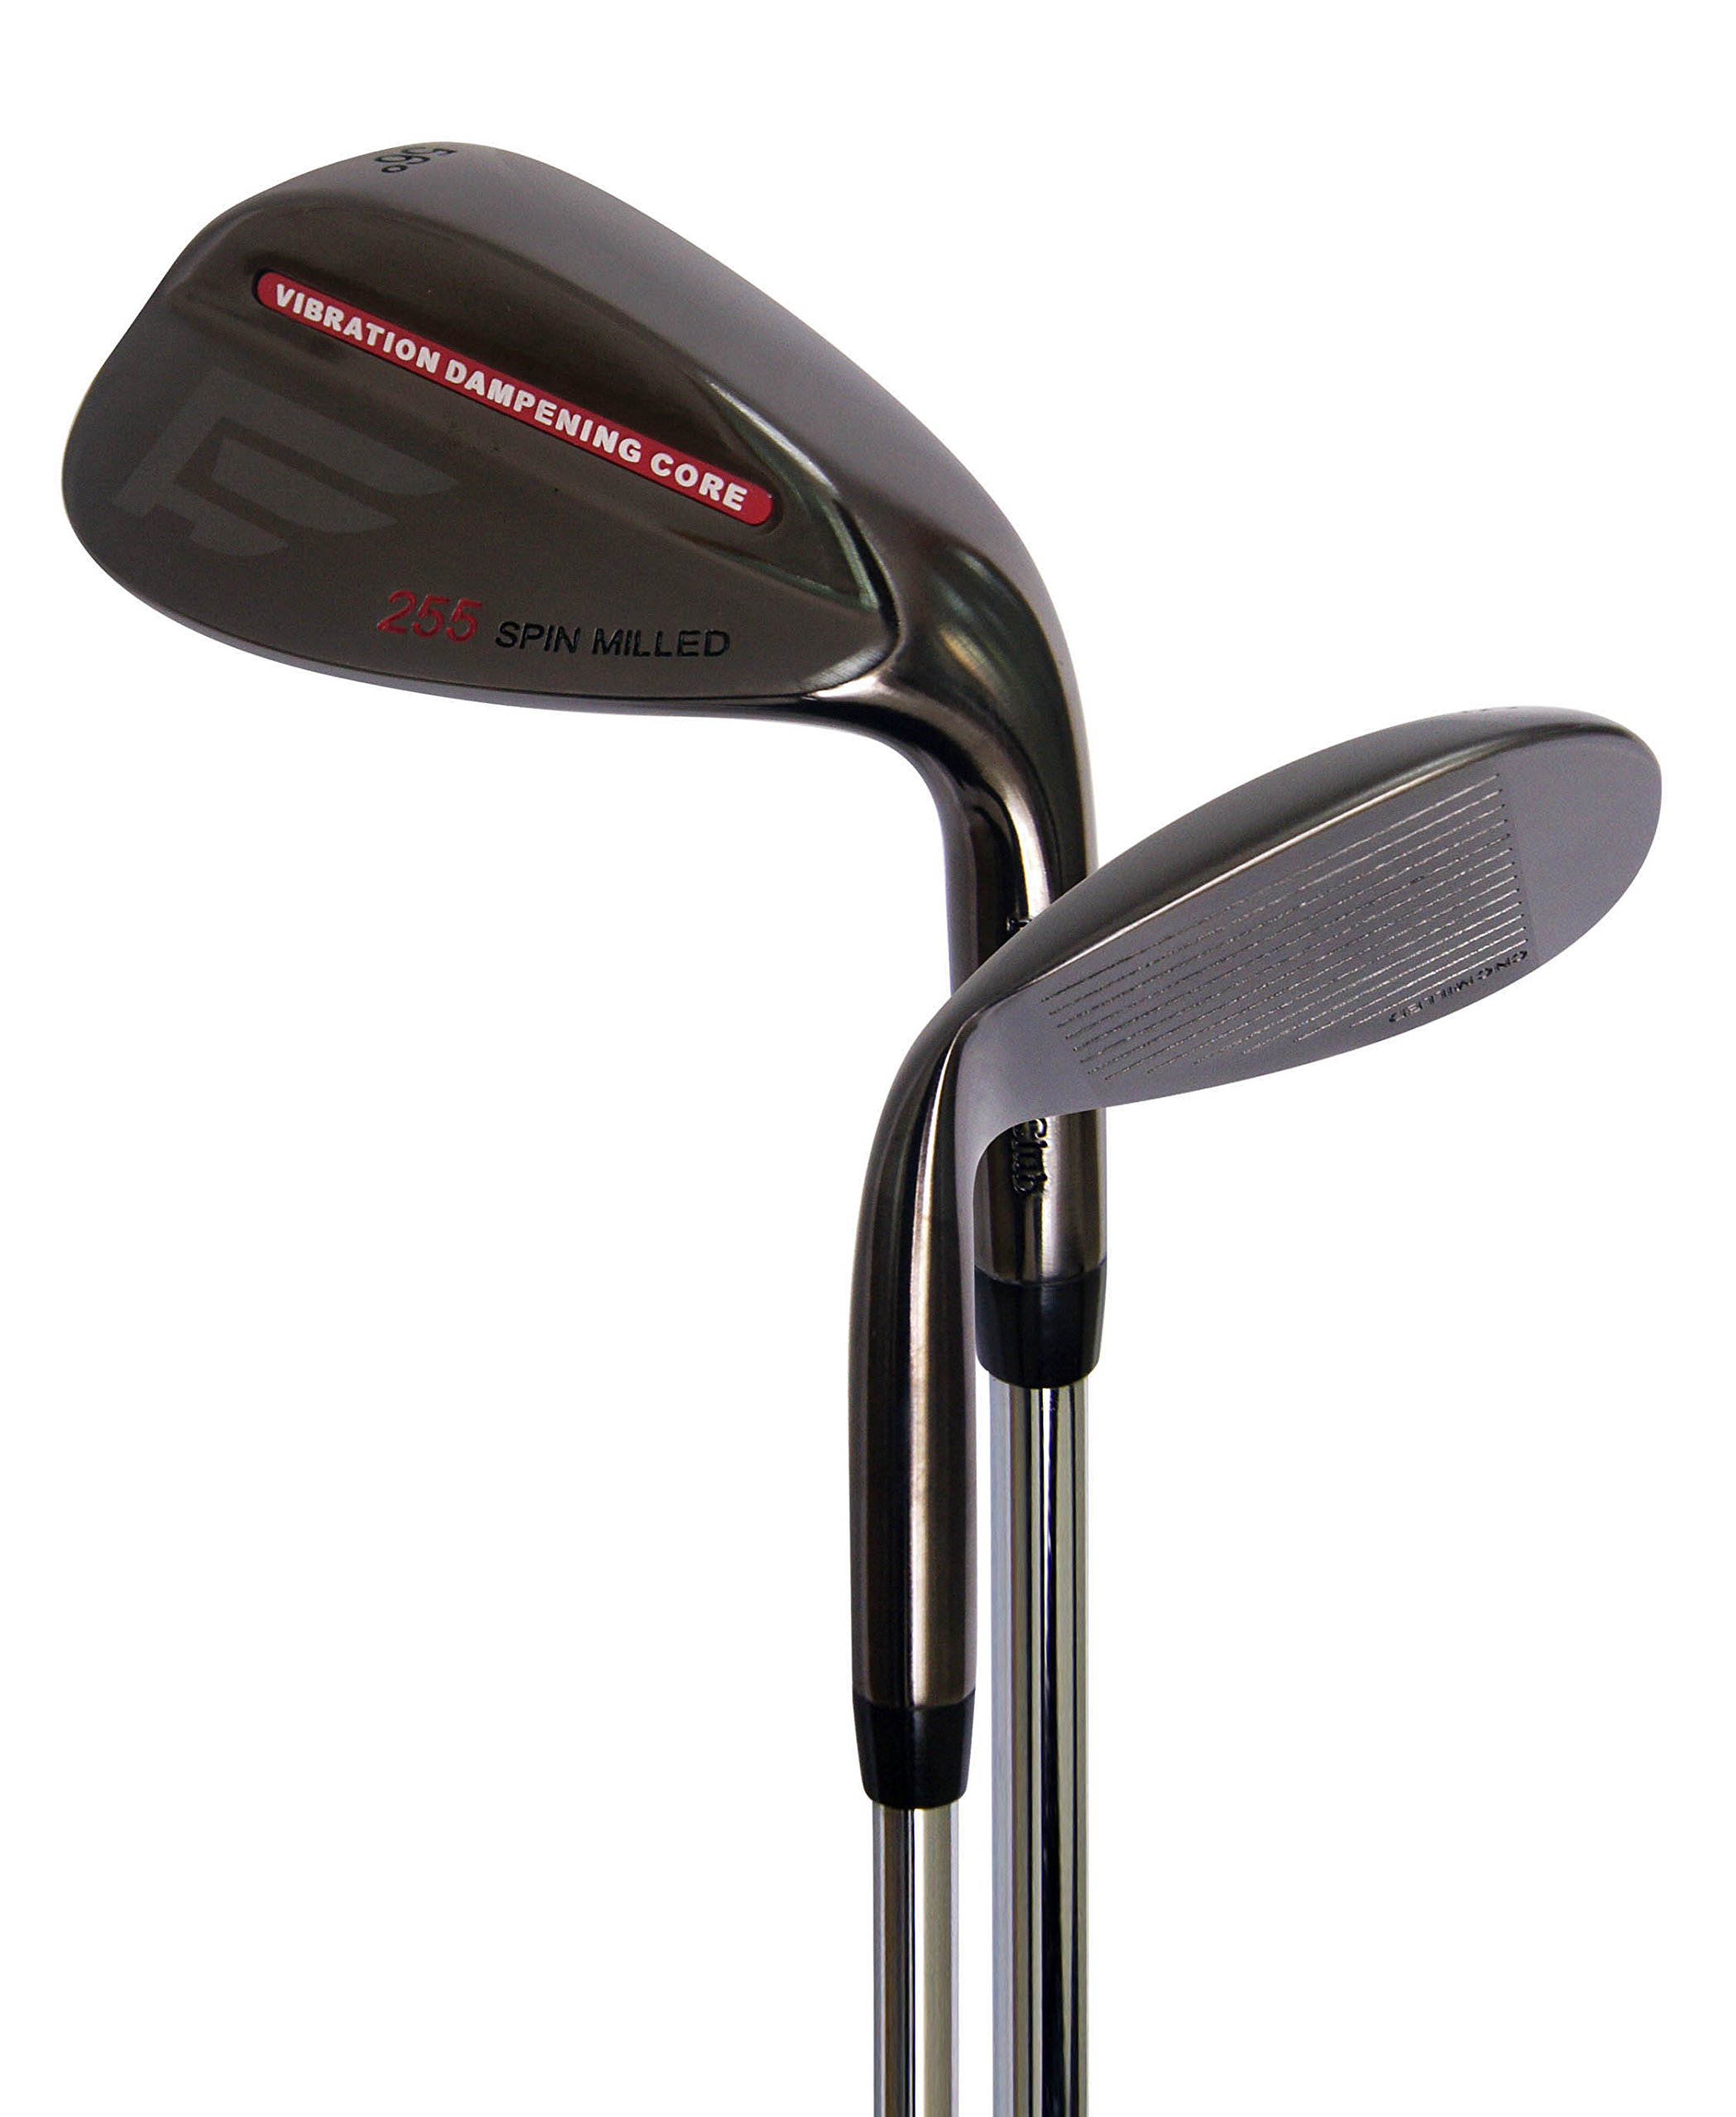 Founders Club Nickel 255 Spin Milled 52 Degree Gap Wedge - Right-Handed